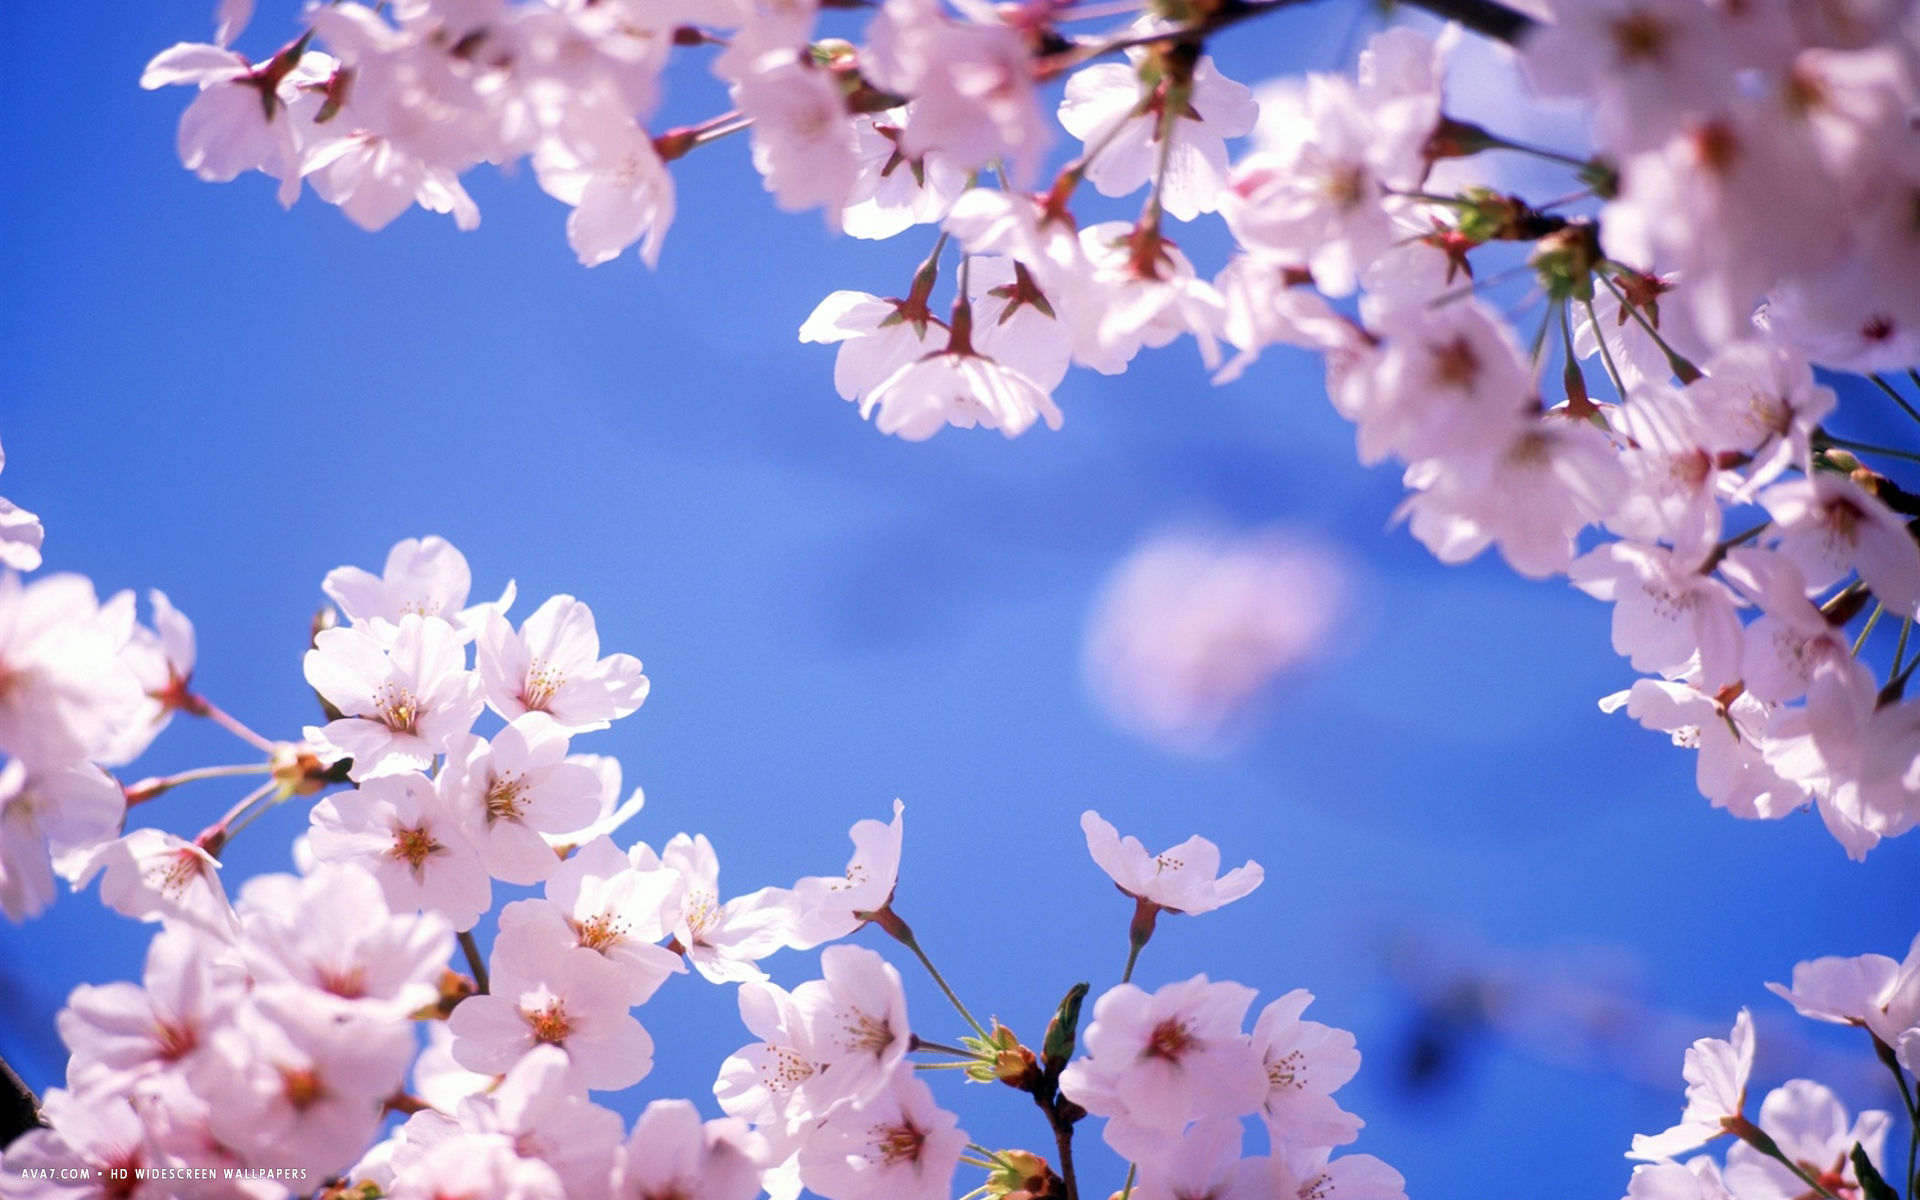 Cherry Blossom Flower Hd Widescreen Wallpaper